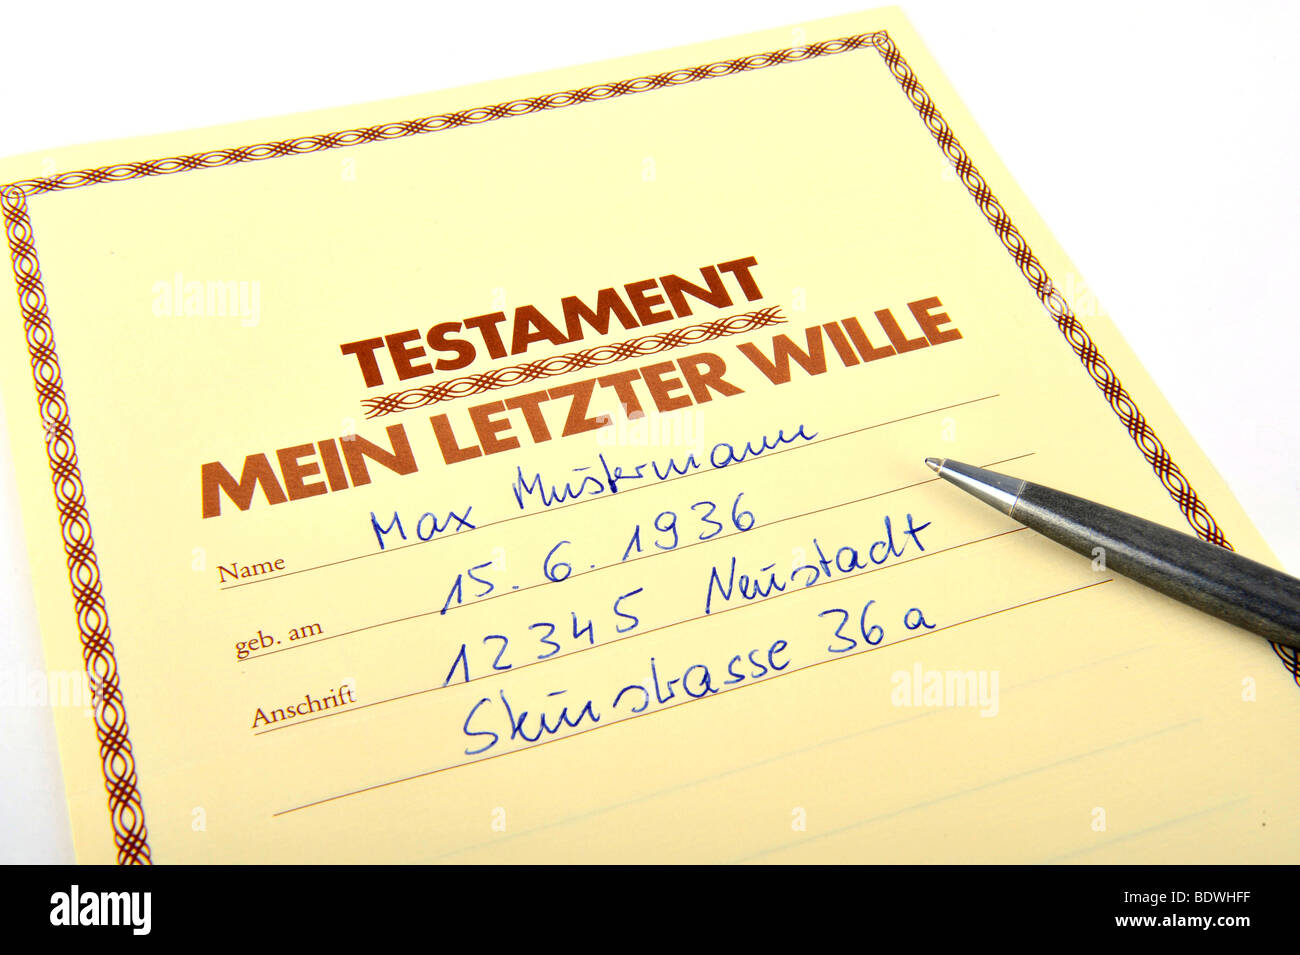 Last will and testament - Stock Image